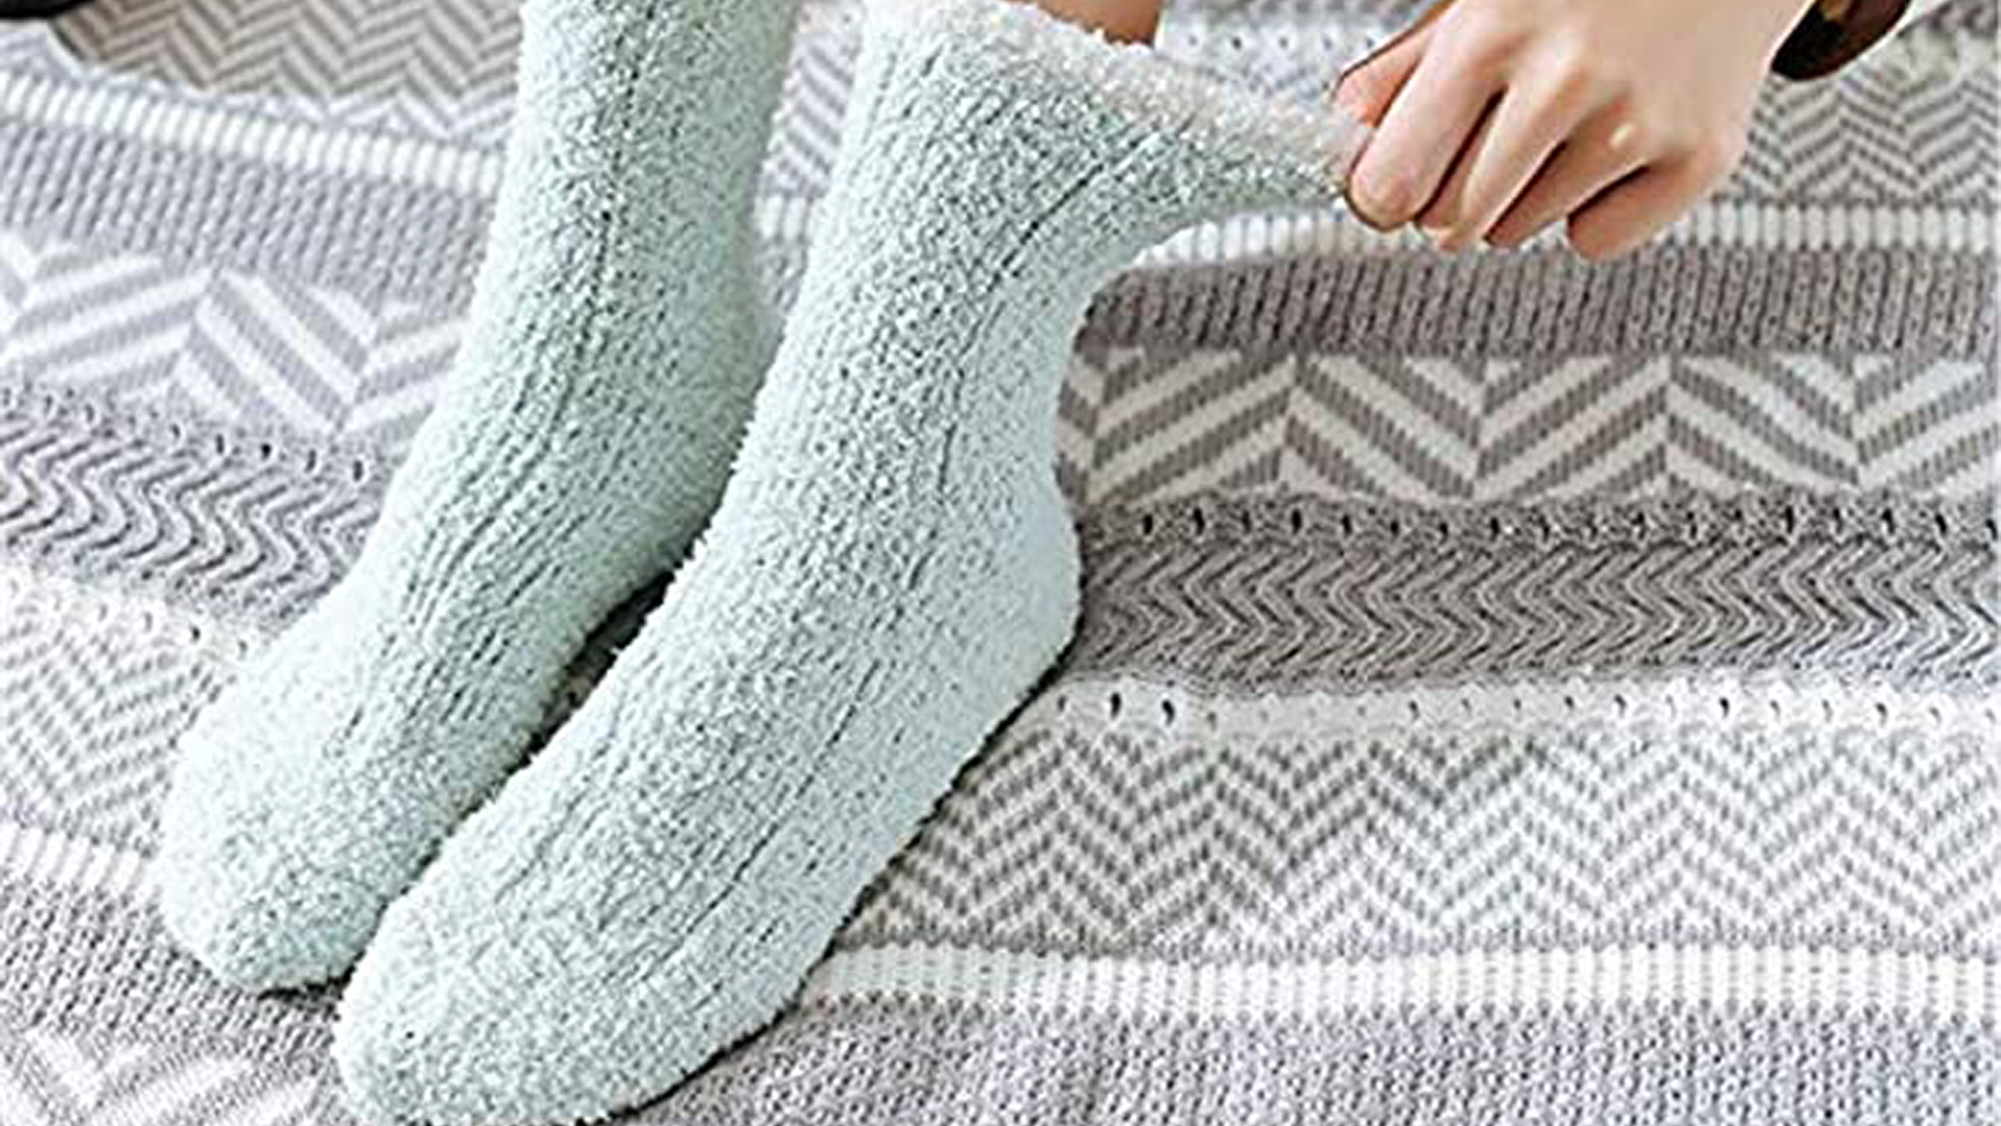 Fuzzy Warm Slipper Socks Women Super Soft Microfiber Cozy Sleeping Socks